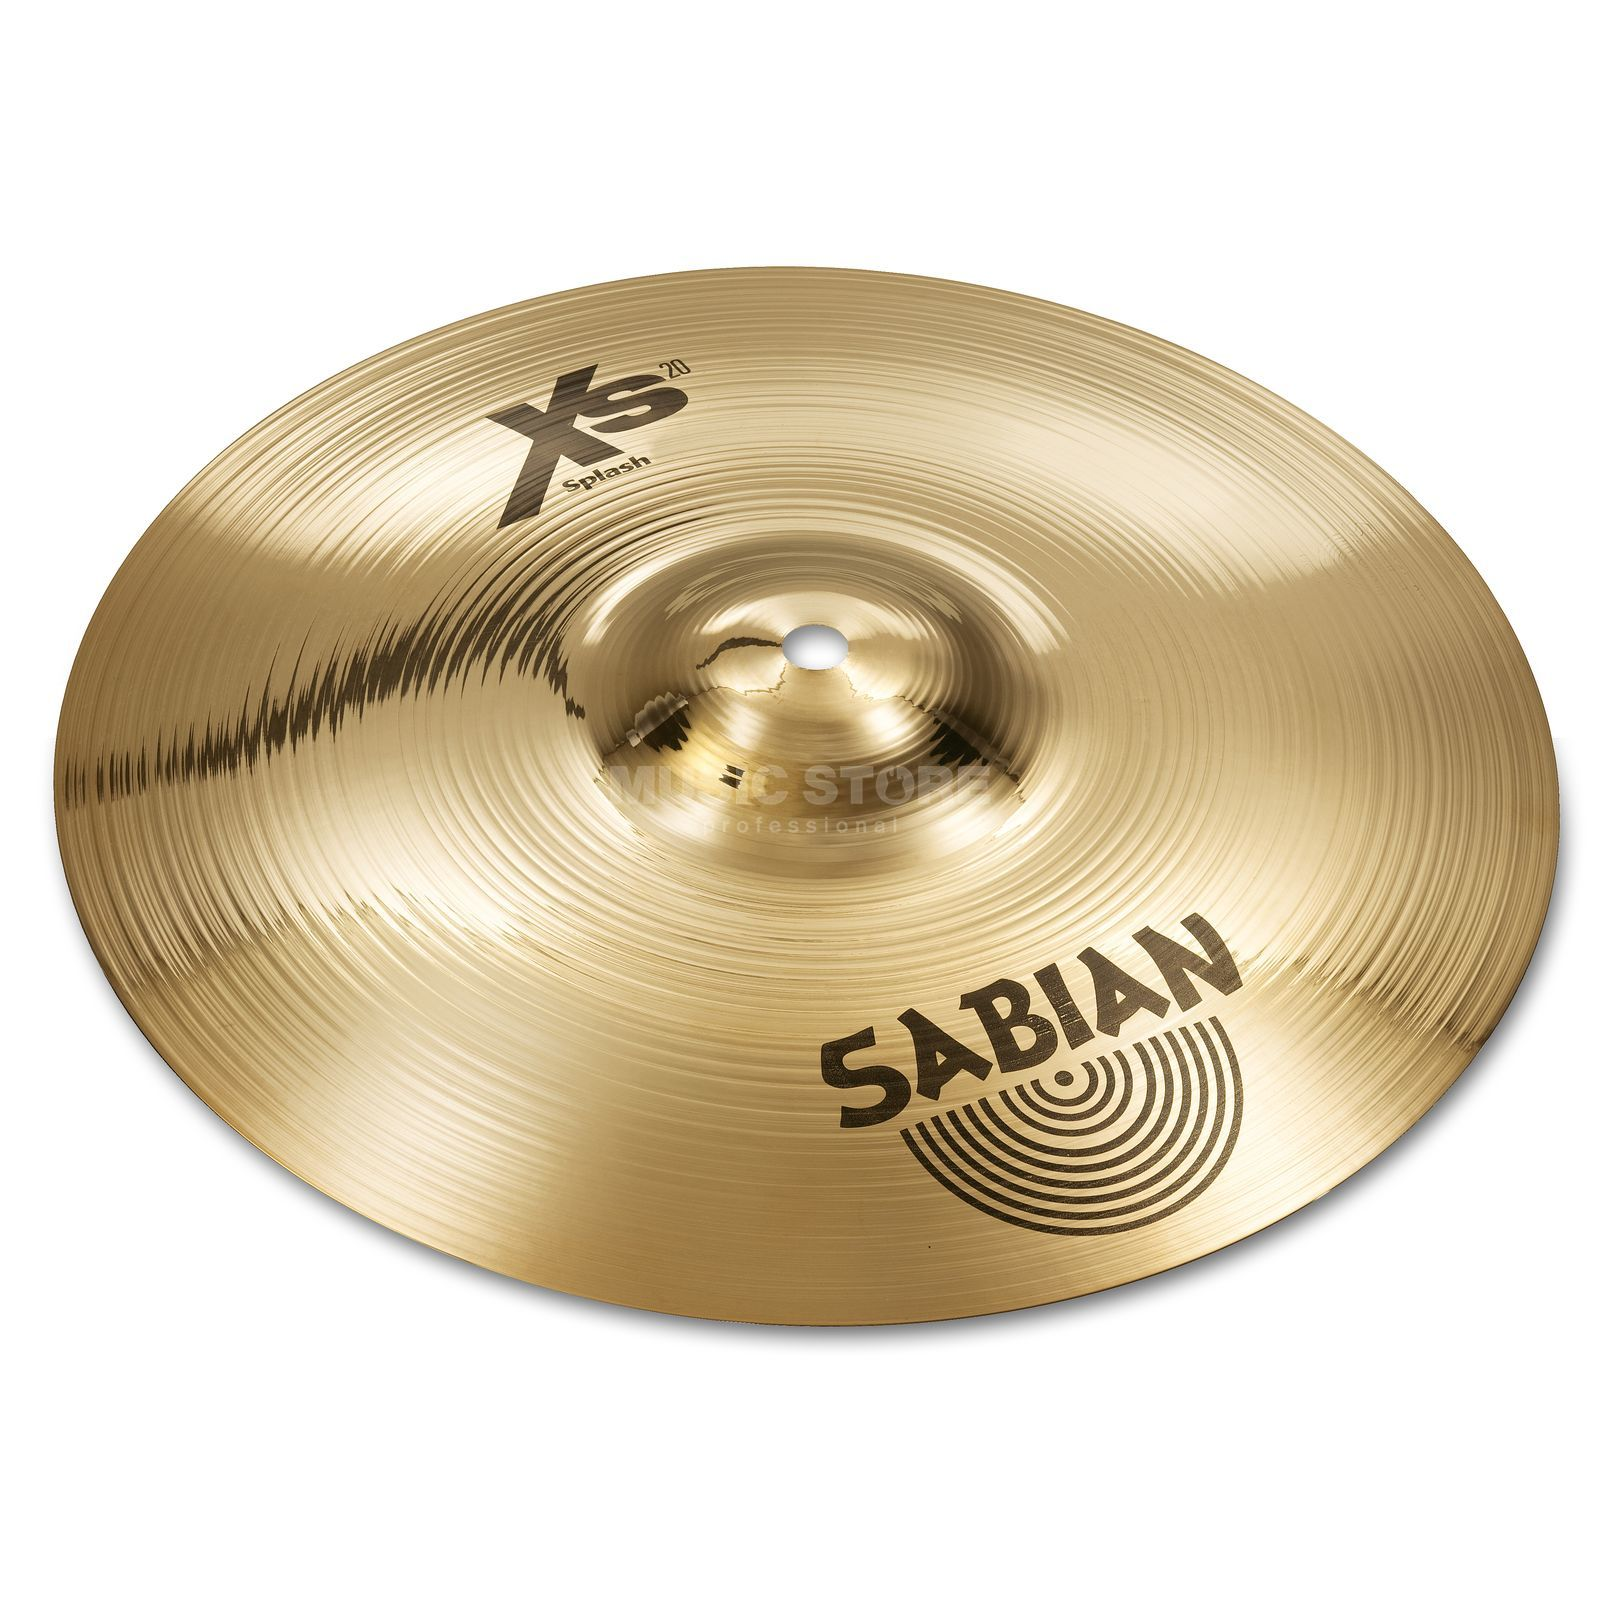 "Sabian XS20 Splash 10"", Brilliant Finish Product Image"